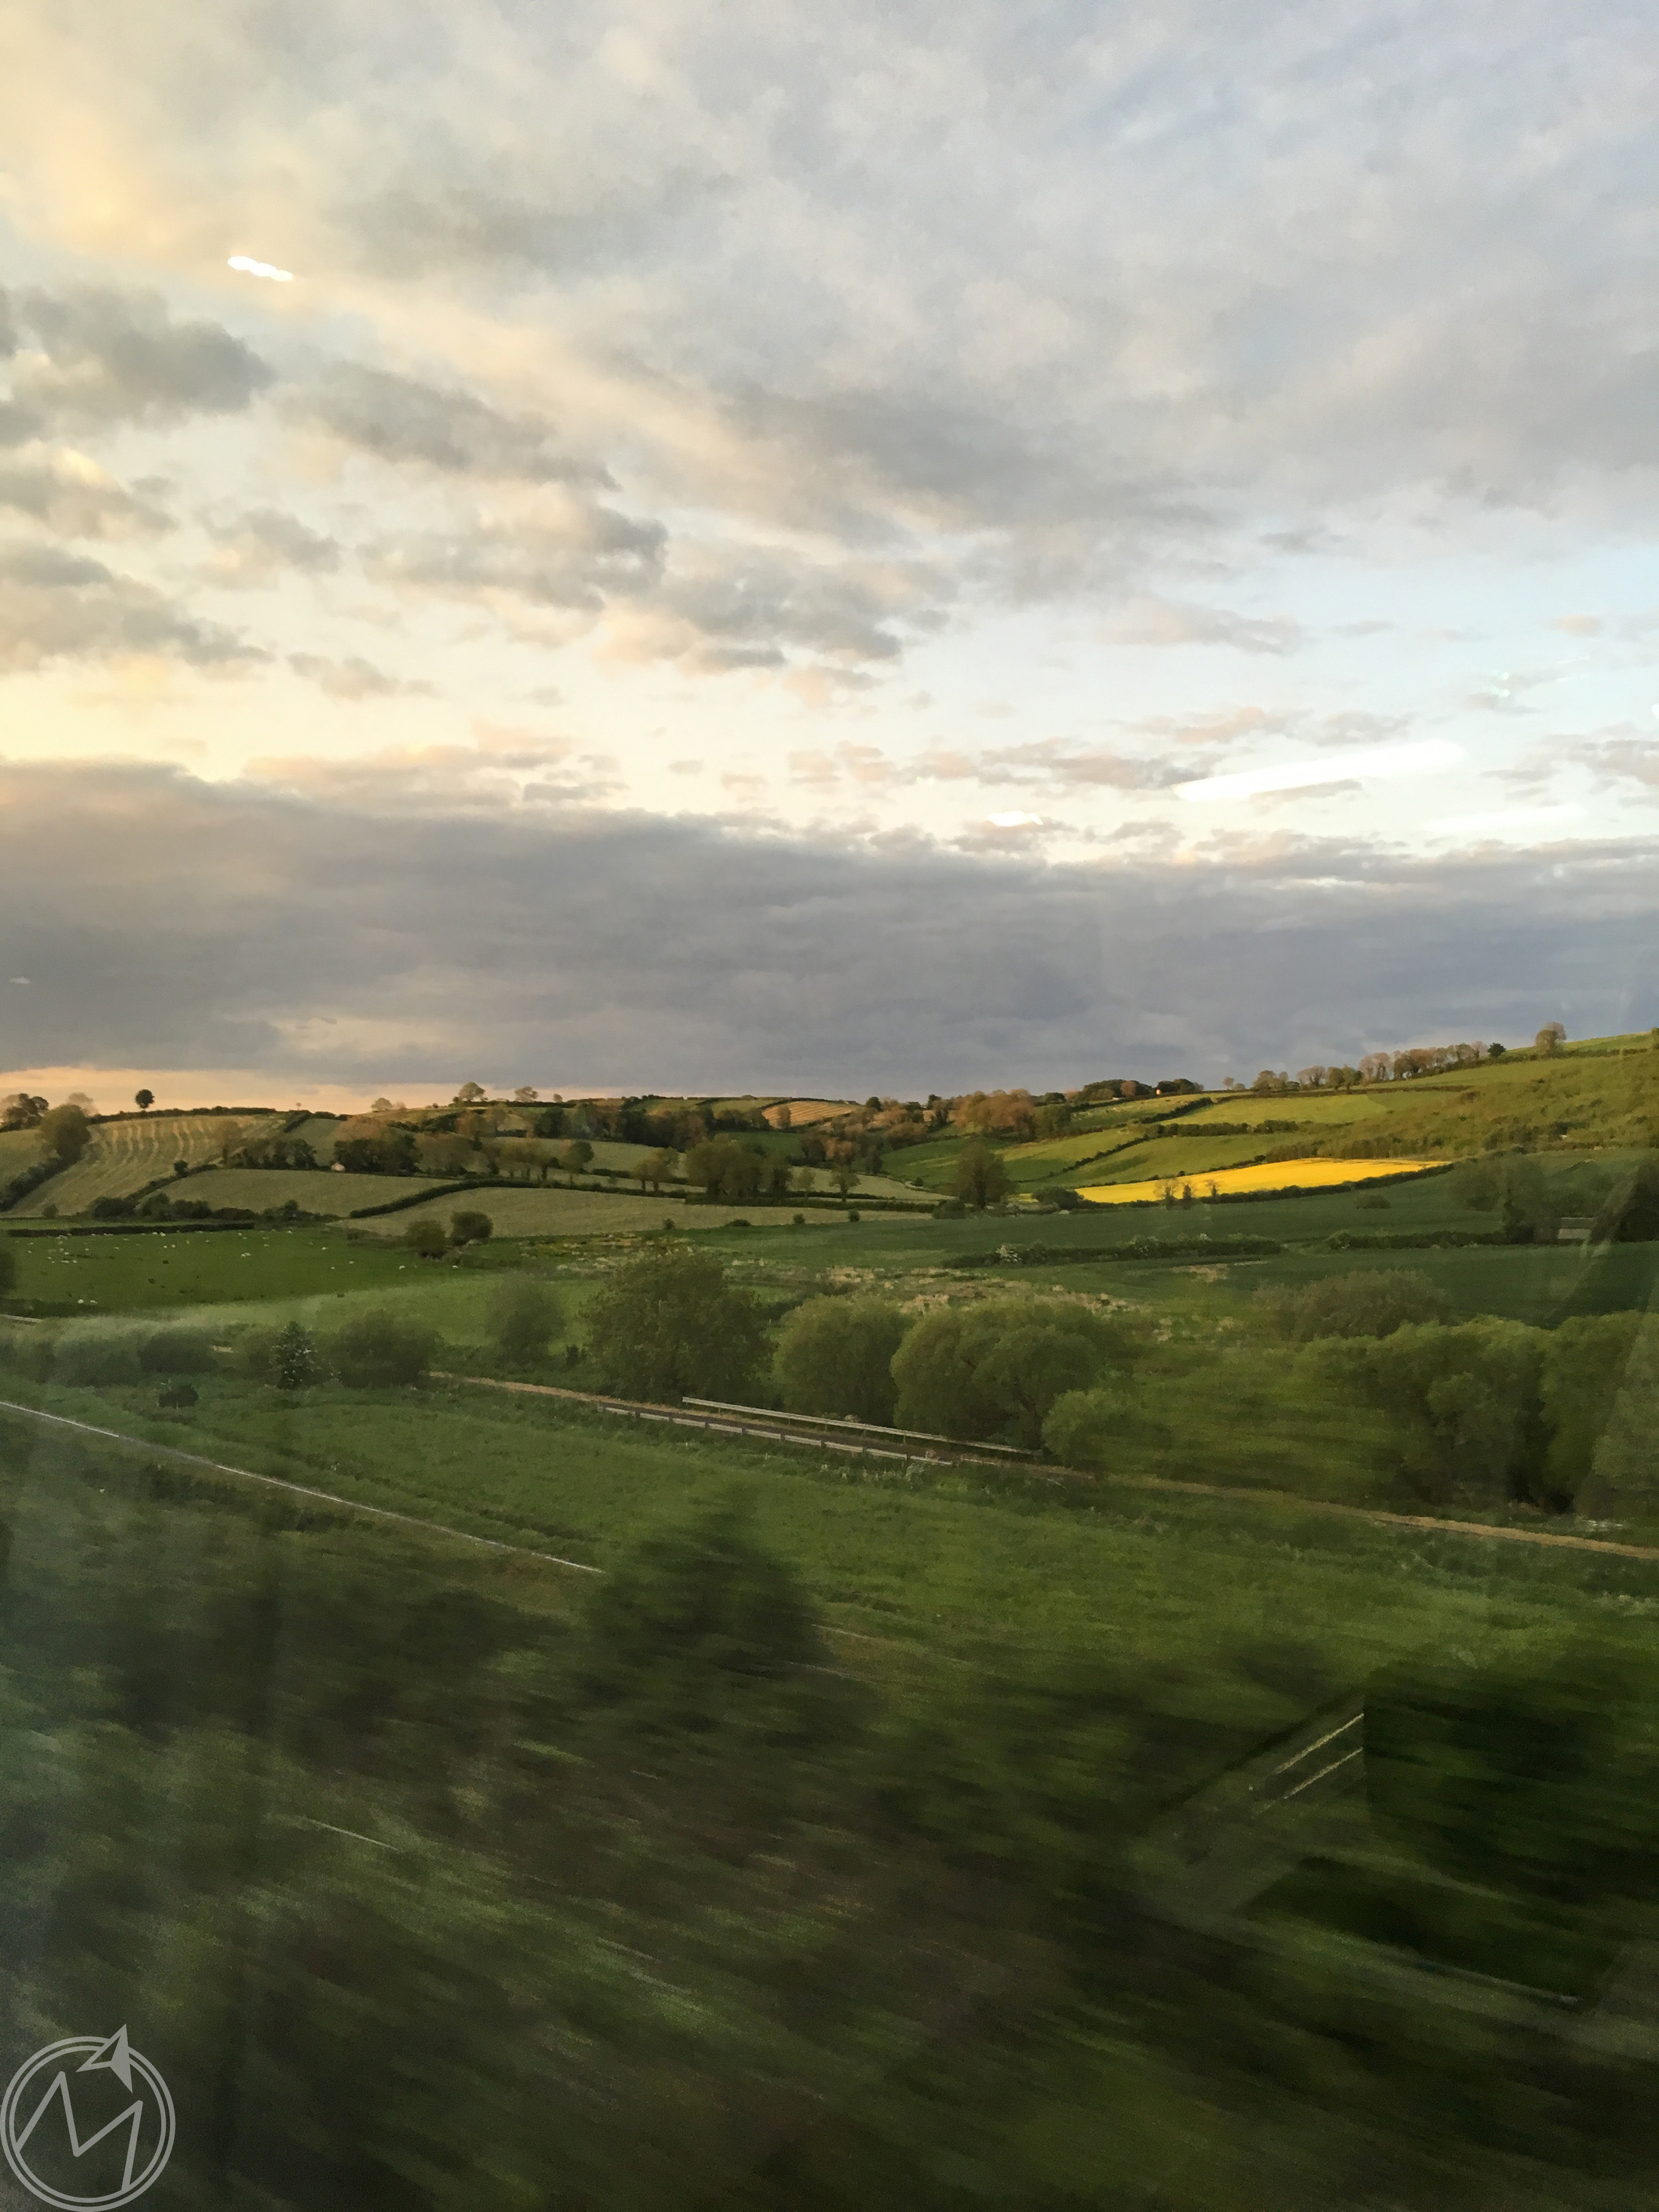 the photo isn't the best since it was taken at train speed, but the irish countryside is just gorg.